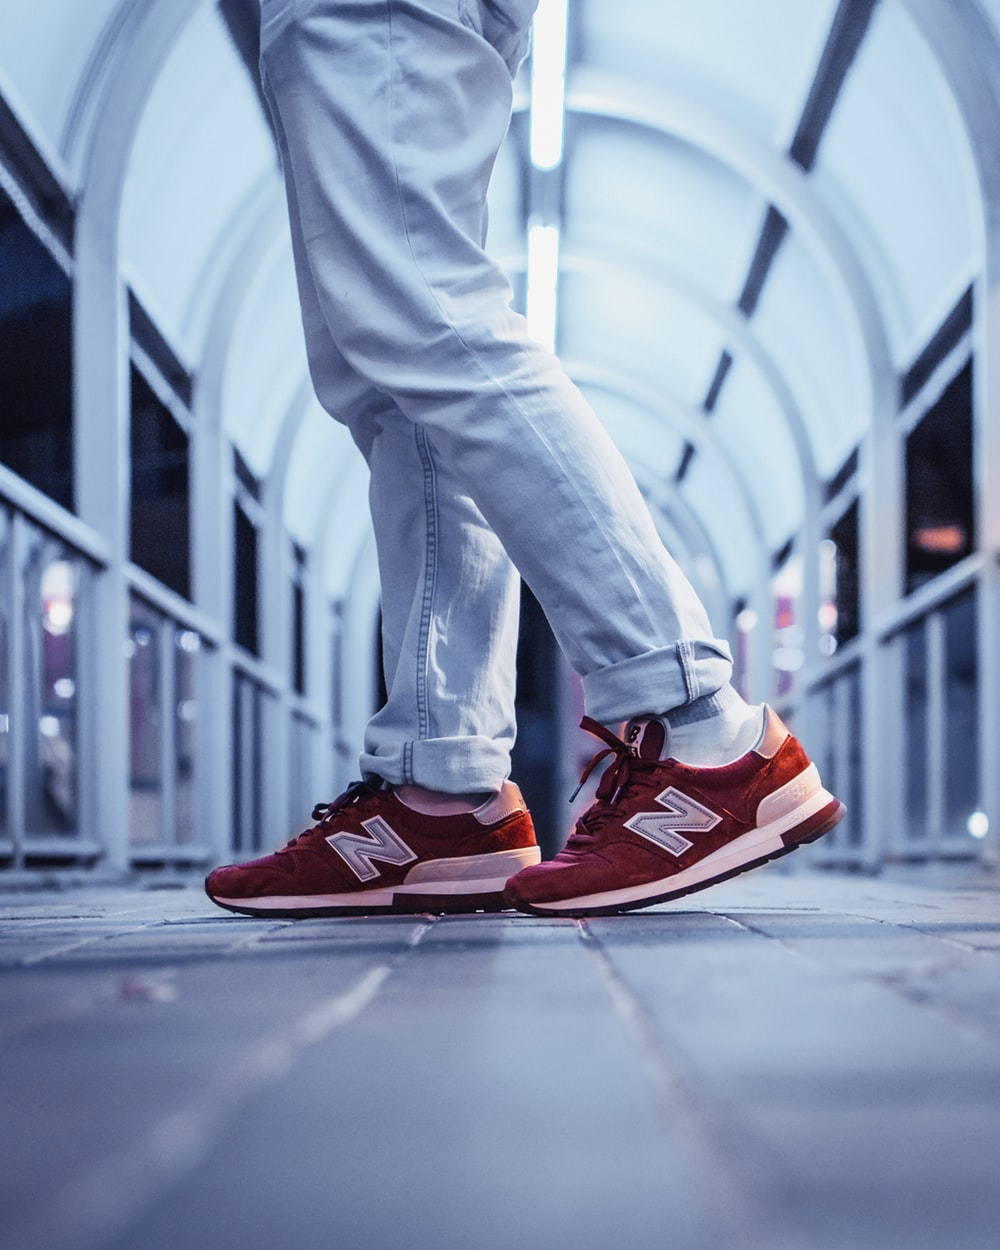 person wearing pair of red New Balance low-top sneakers